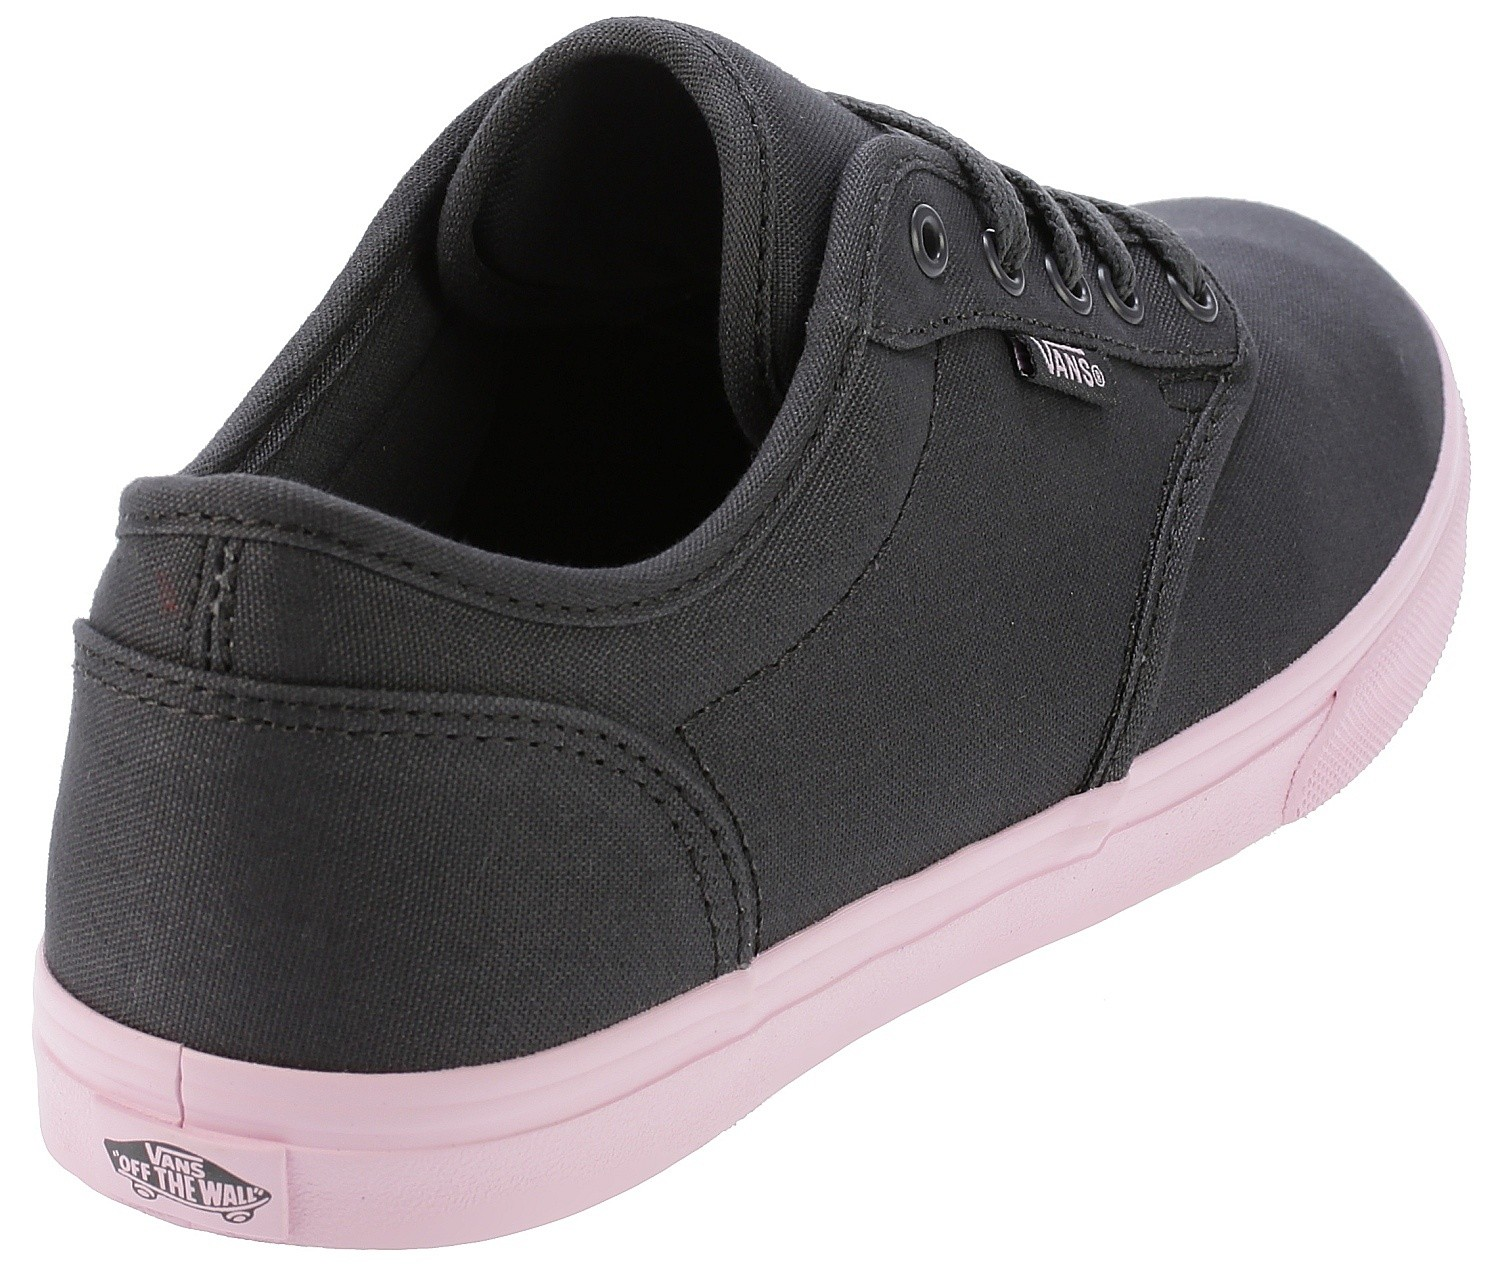 shoes Vans Atwood Low - Pop Sole/Asphalt/Pink Lady. IN STOCK -20%